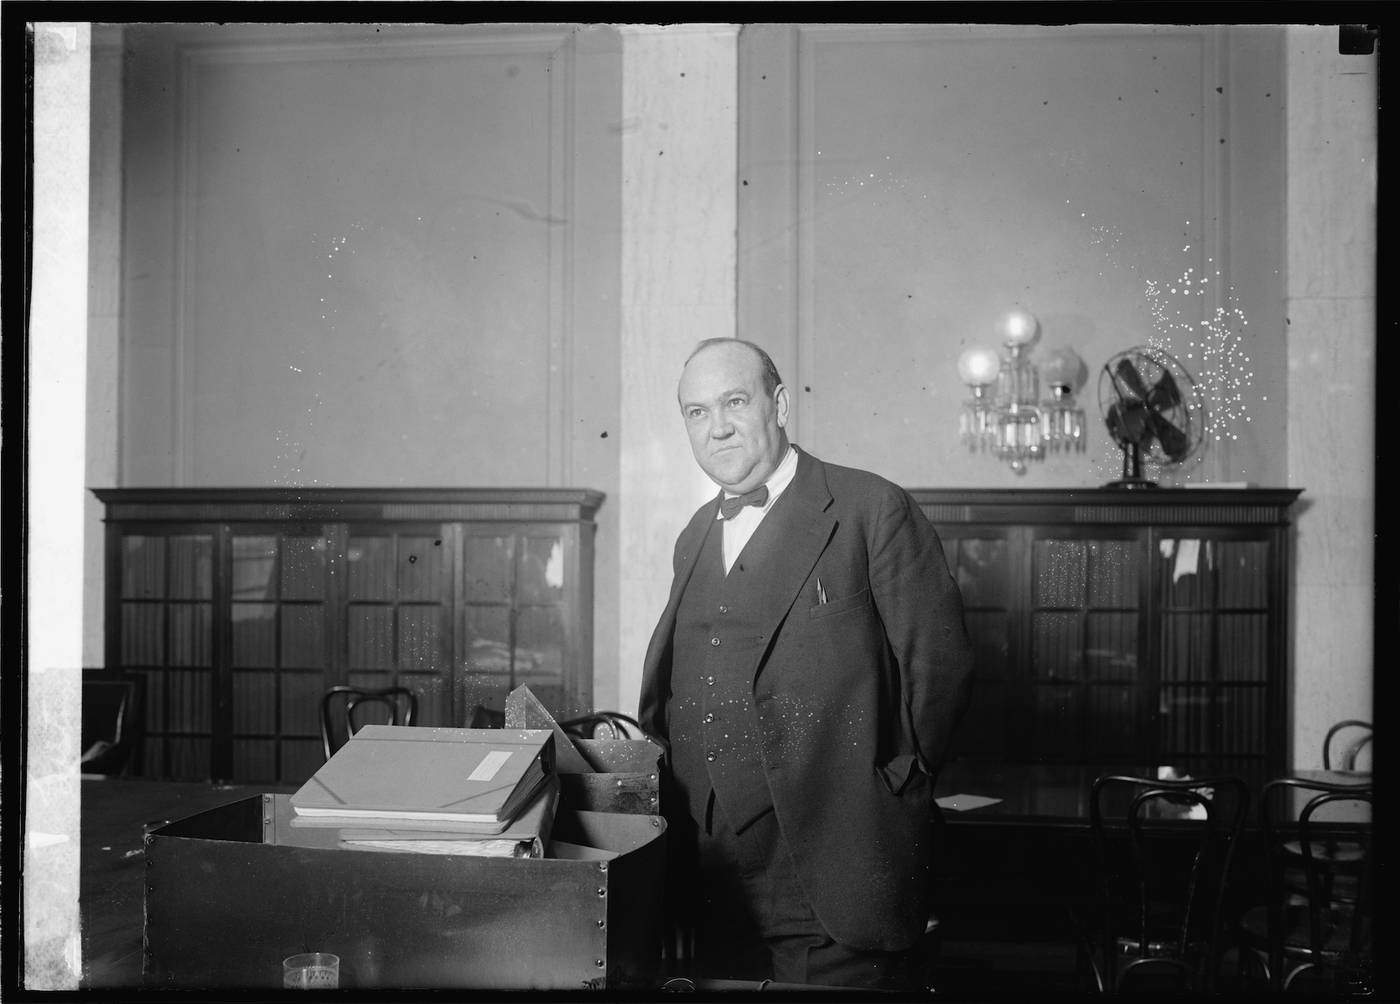 Prohibition-era criminal Gaston Means. Photo credit: Library of Congress